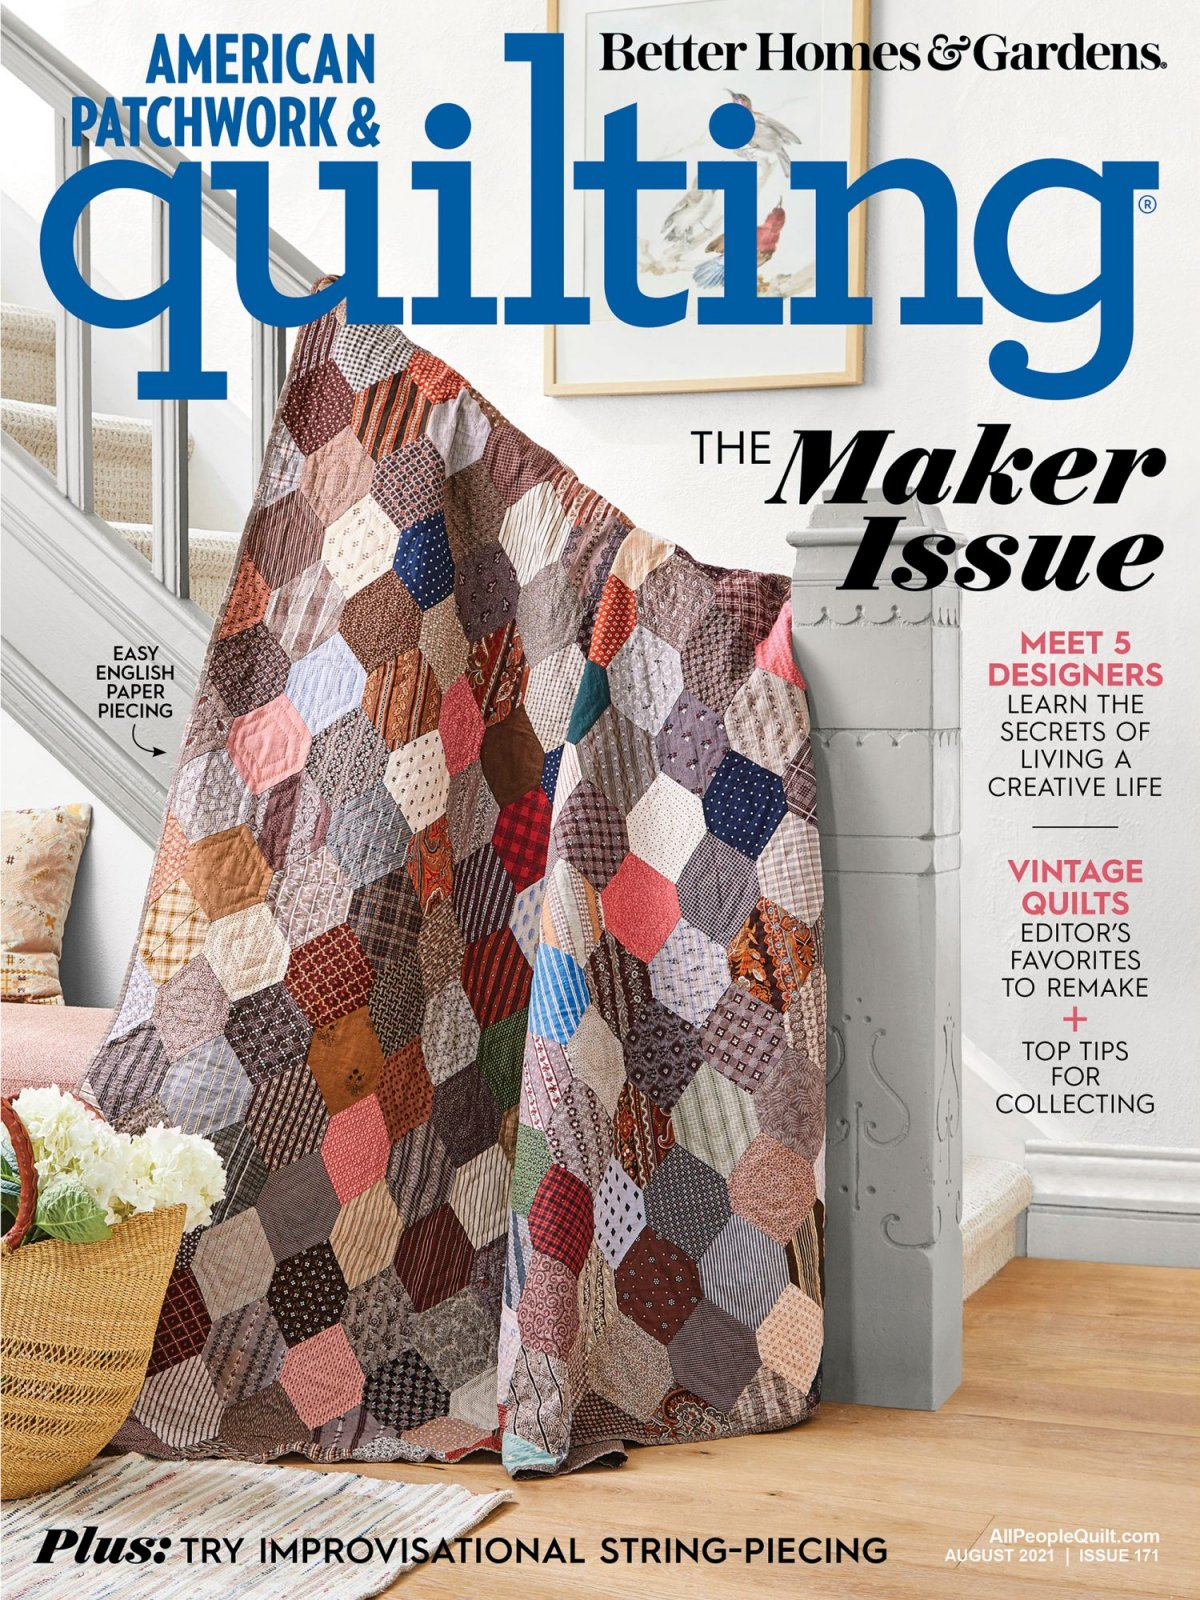 MZ- American Patchwork & Quilting August 2021